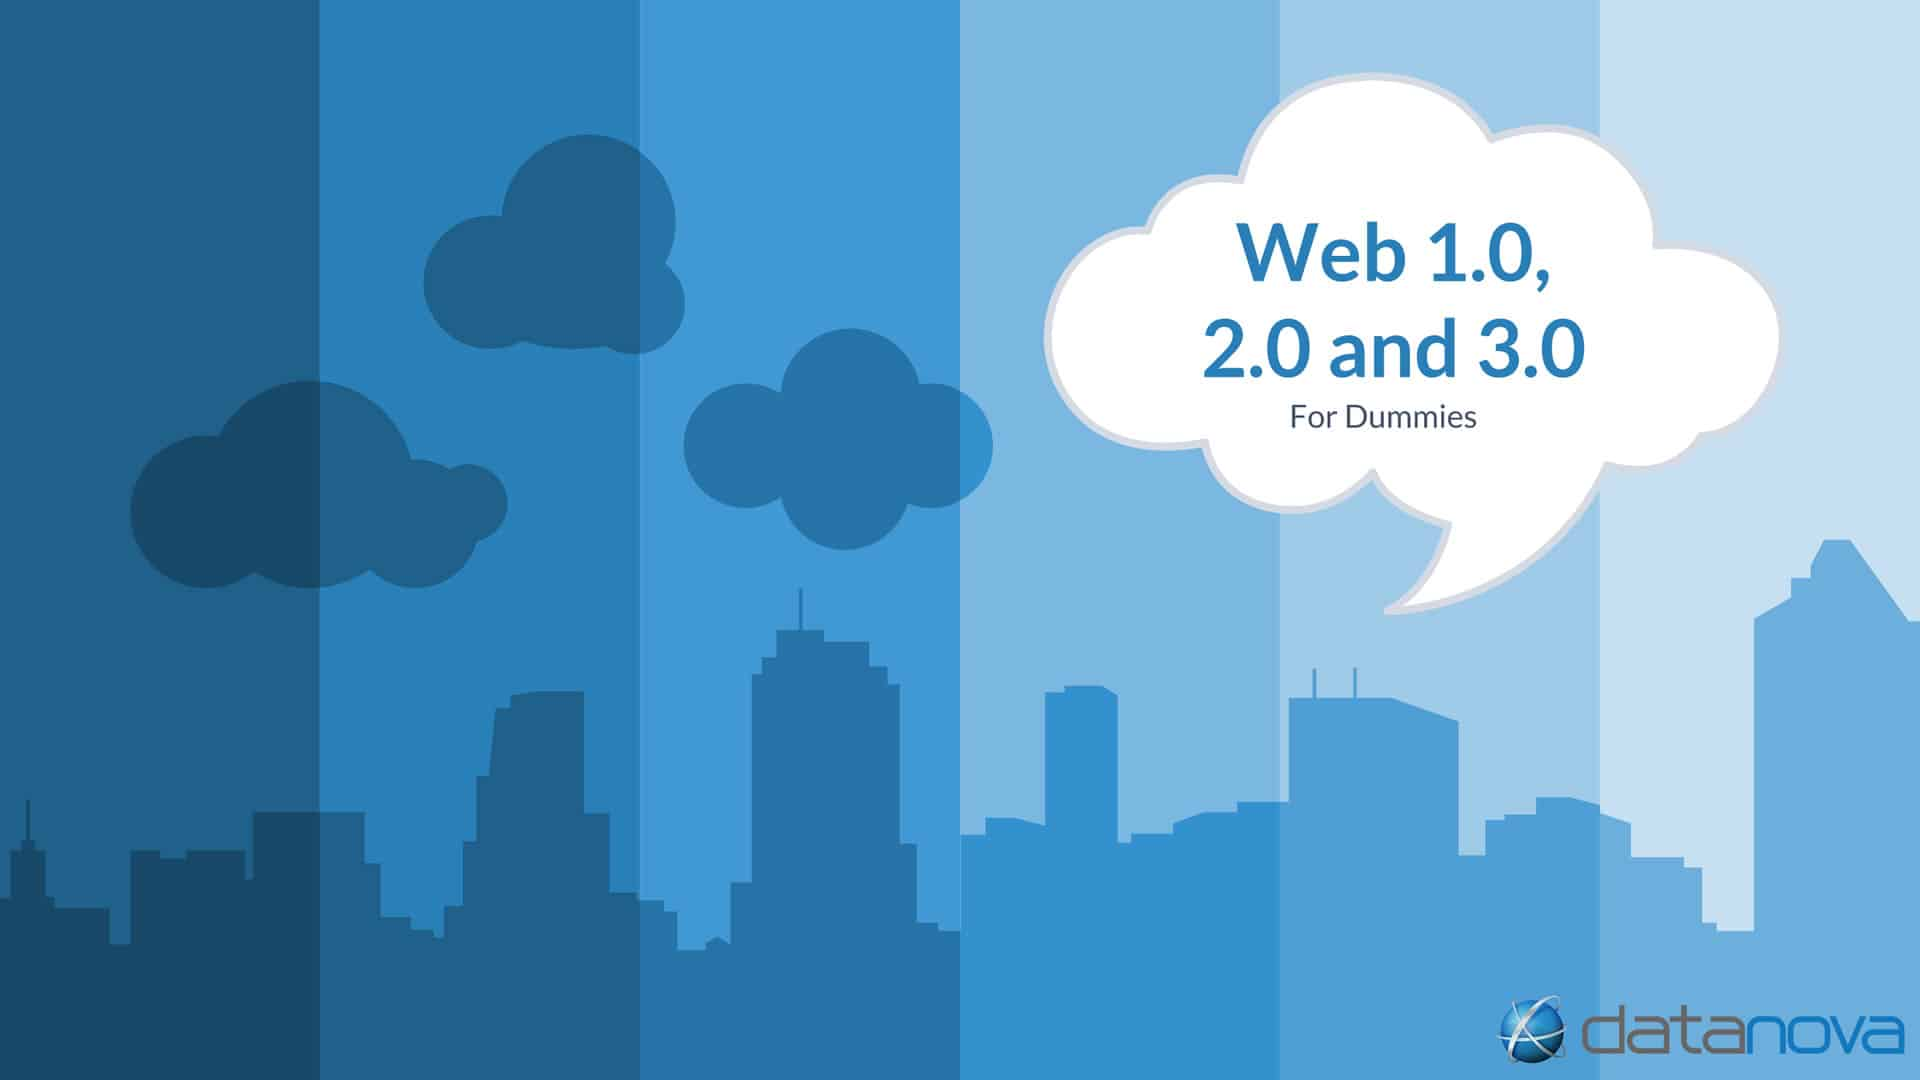 Web 1.0, 2.0 and 3.0 for dummies